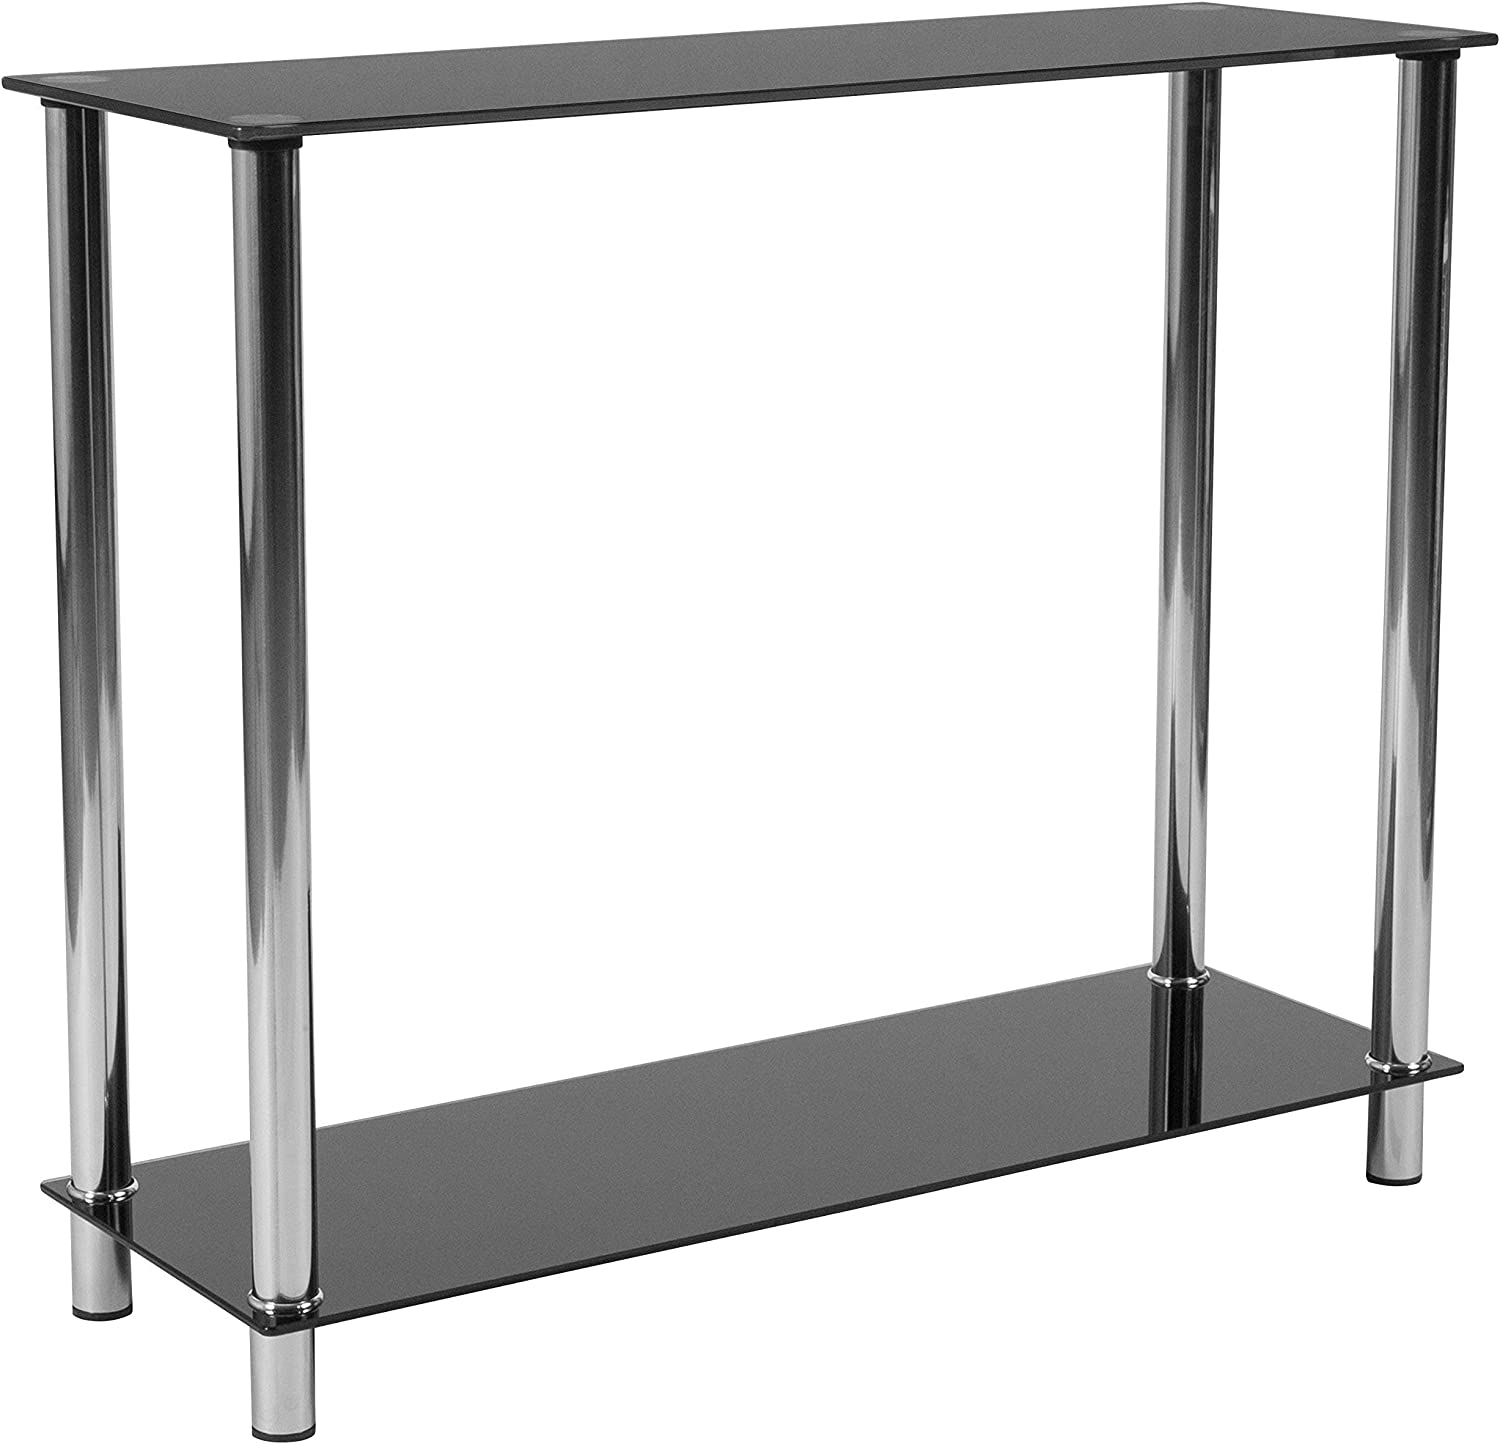 Flash Furniture Riverside Collection Black Glass Console Table with Shelves and Stainless Steel Frame